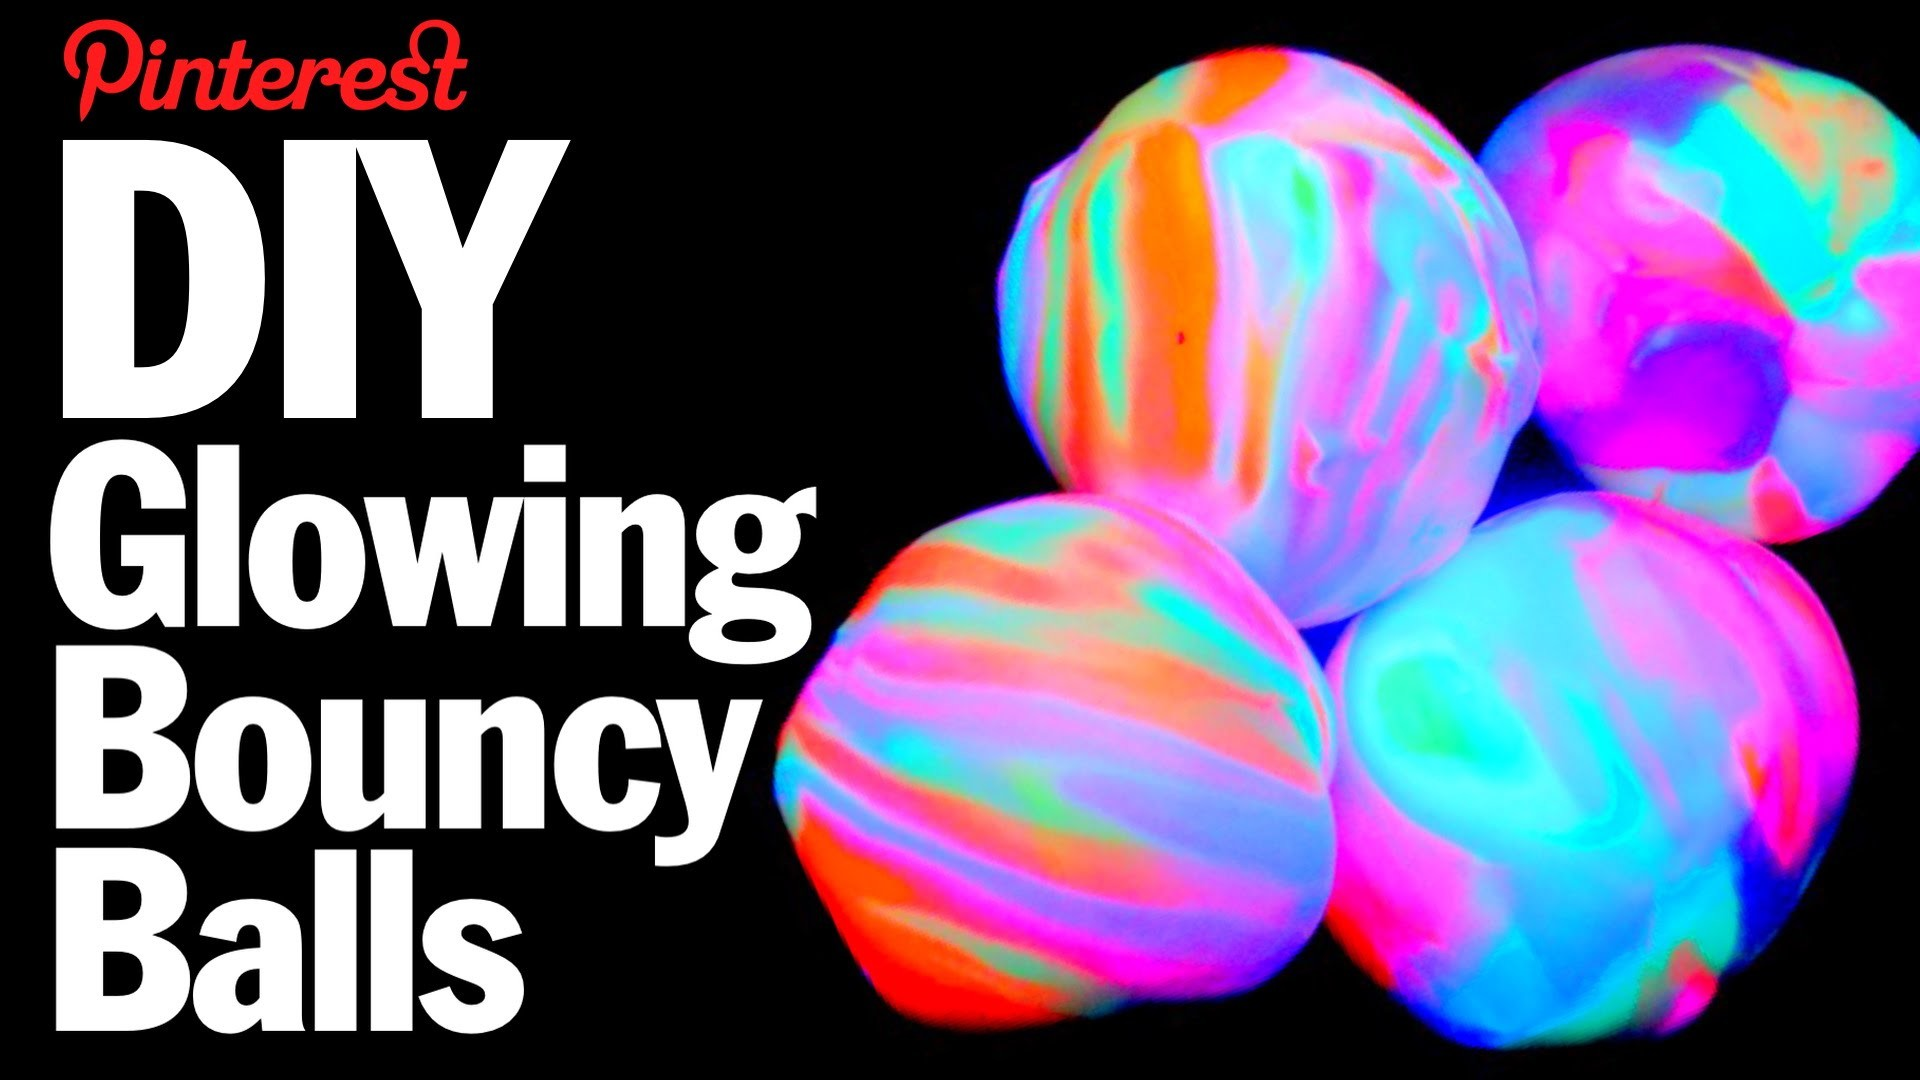 DIY Glowing Bouncy Balls - Kid Vs Pin - Pinterest Project #49